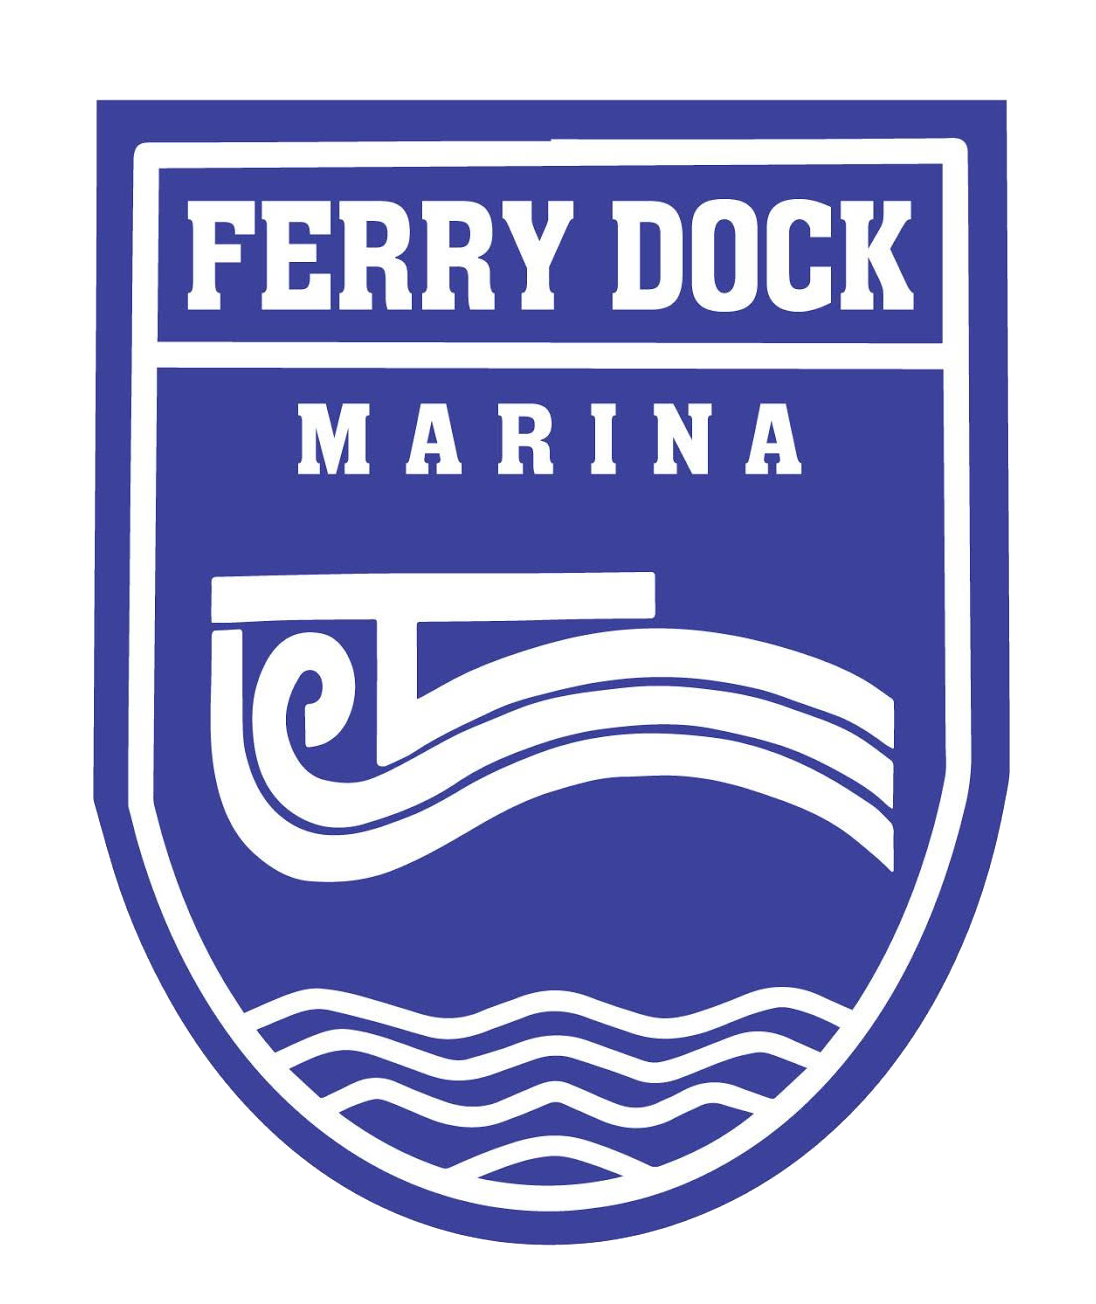 Ferry Dock Marina